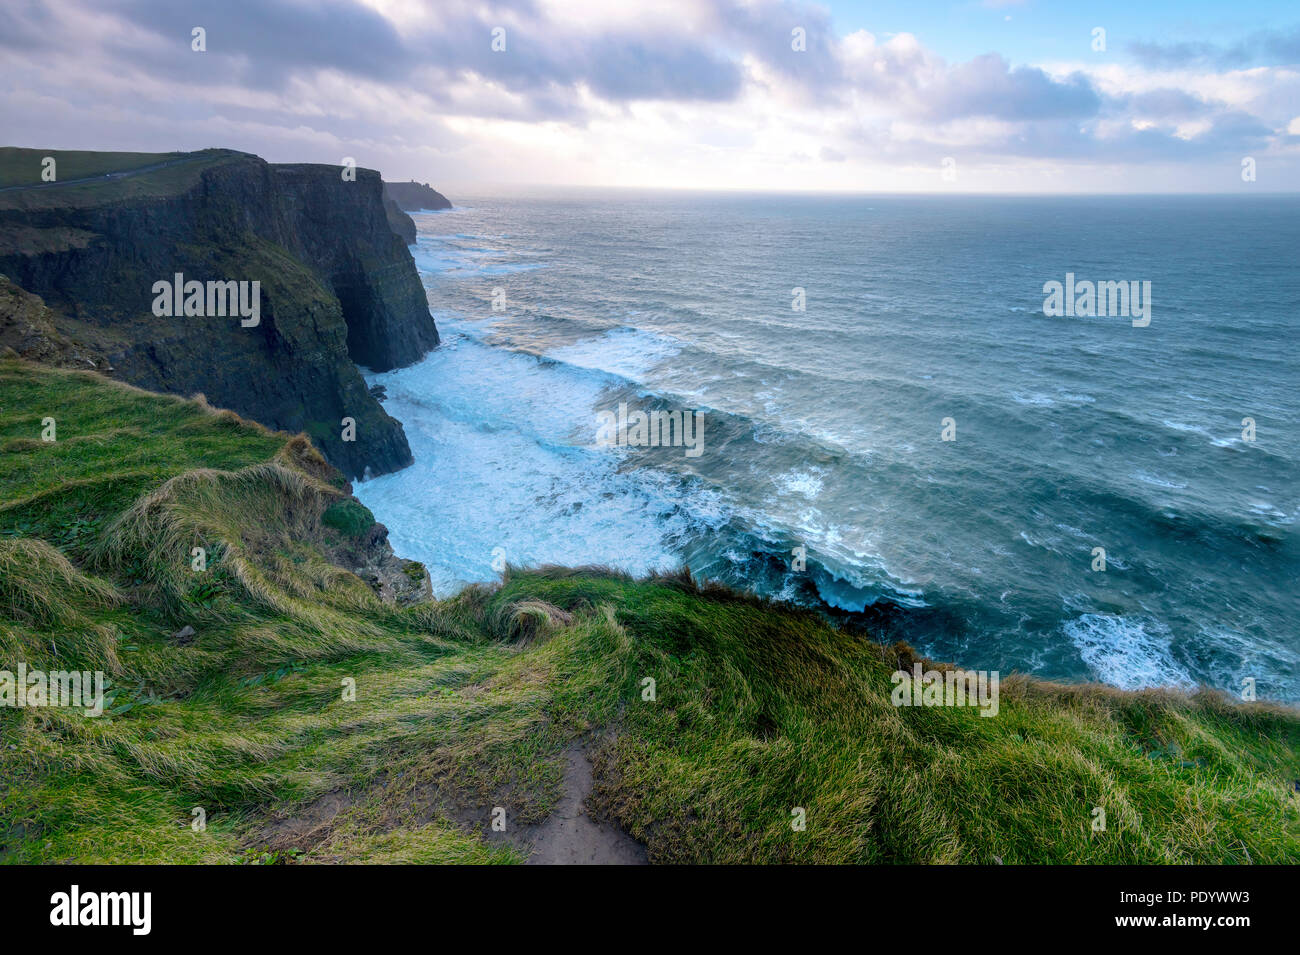 Beautiful landscapes and ruins of Ireland and Northern Ireland stunning scenic scapes of the Irish landscape. - Stock Image